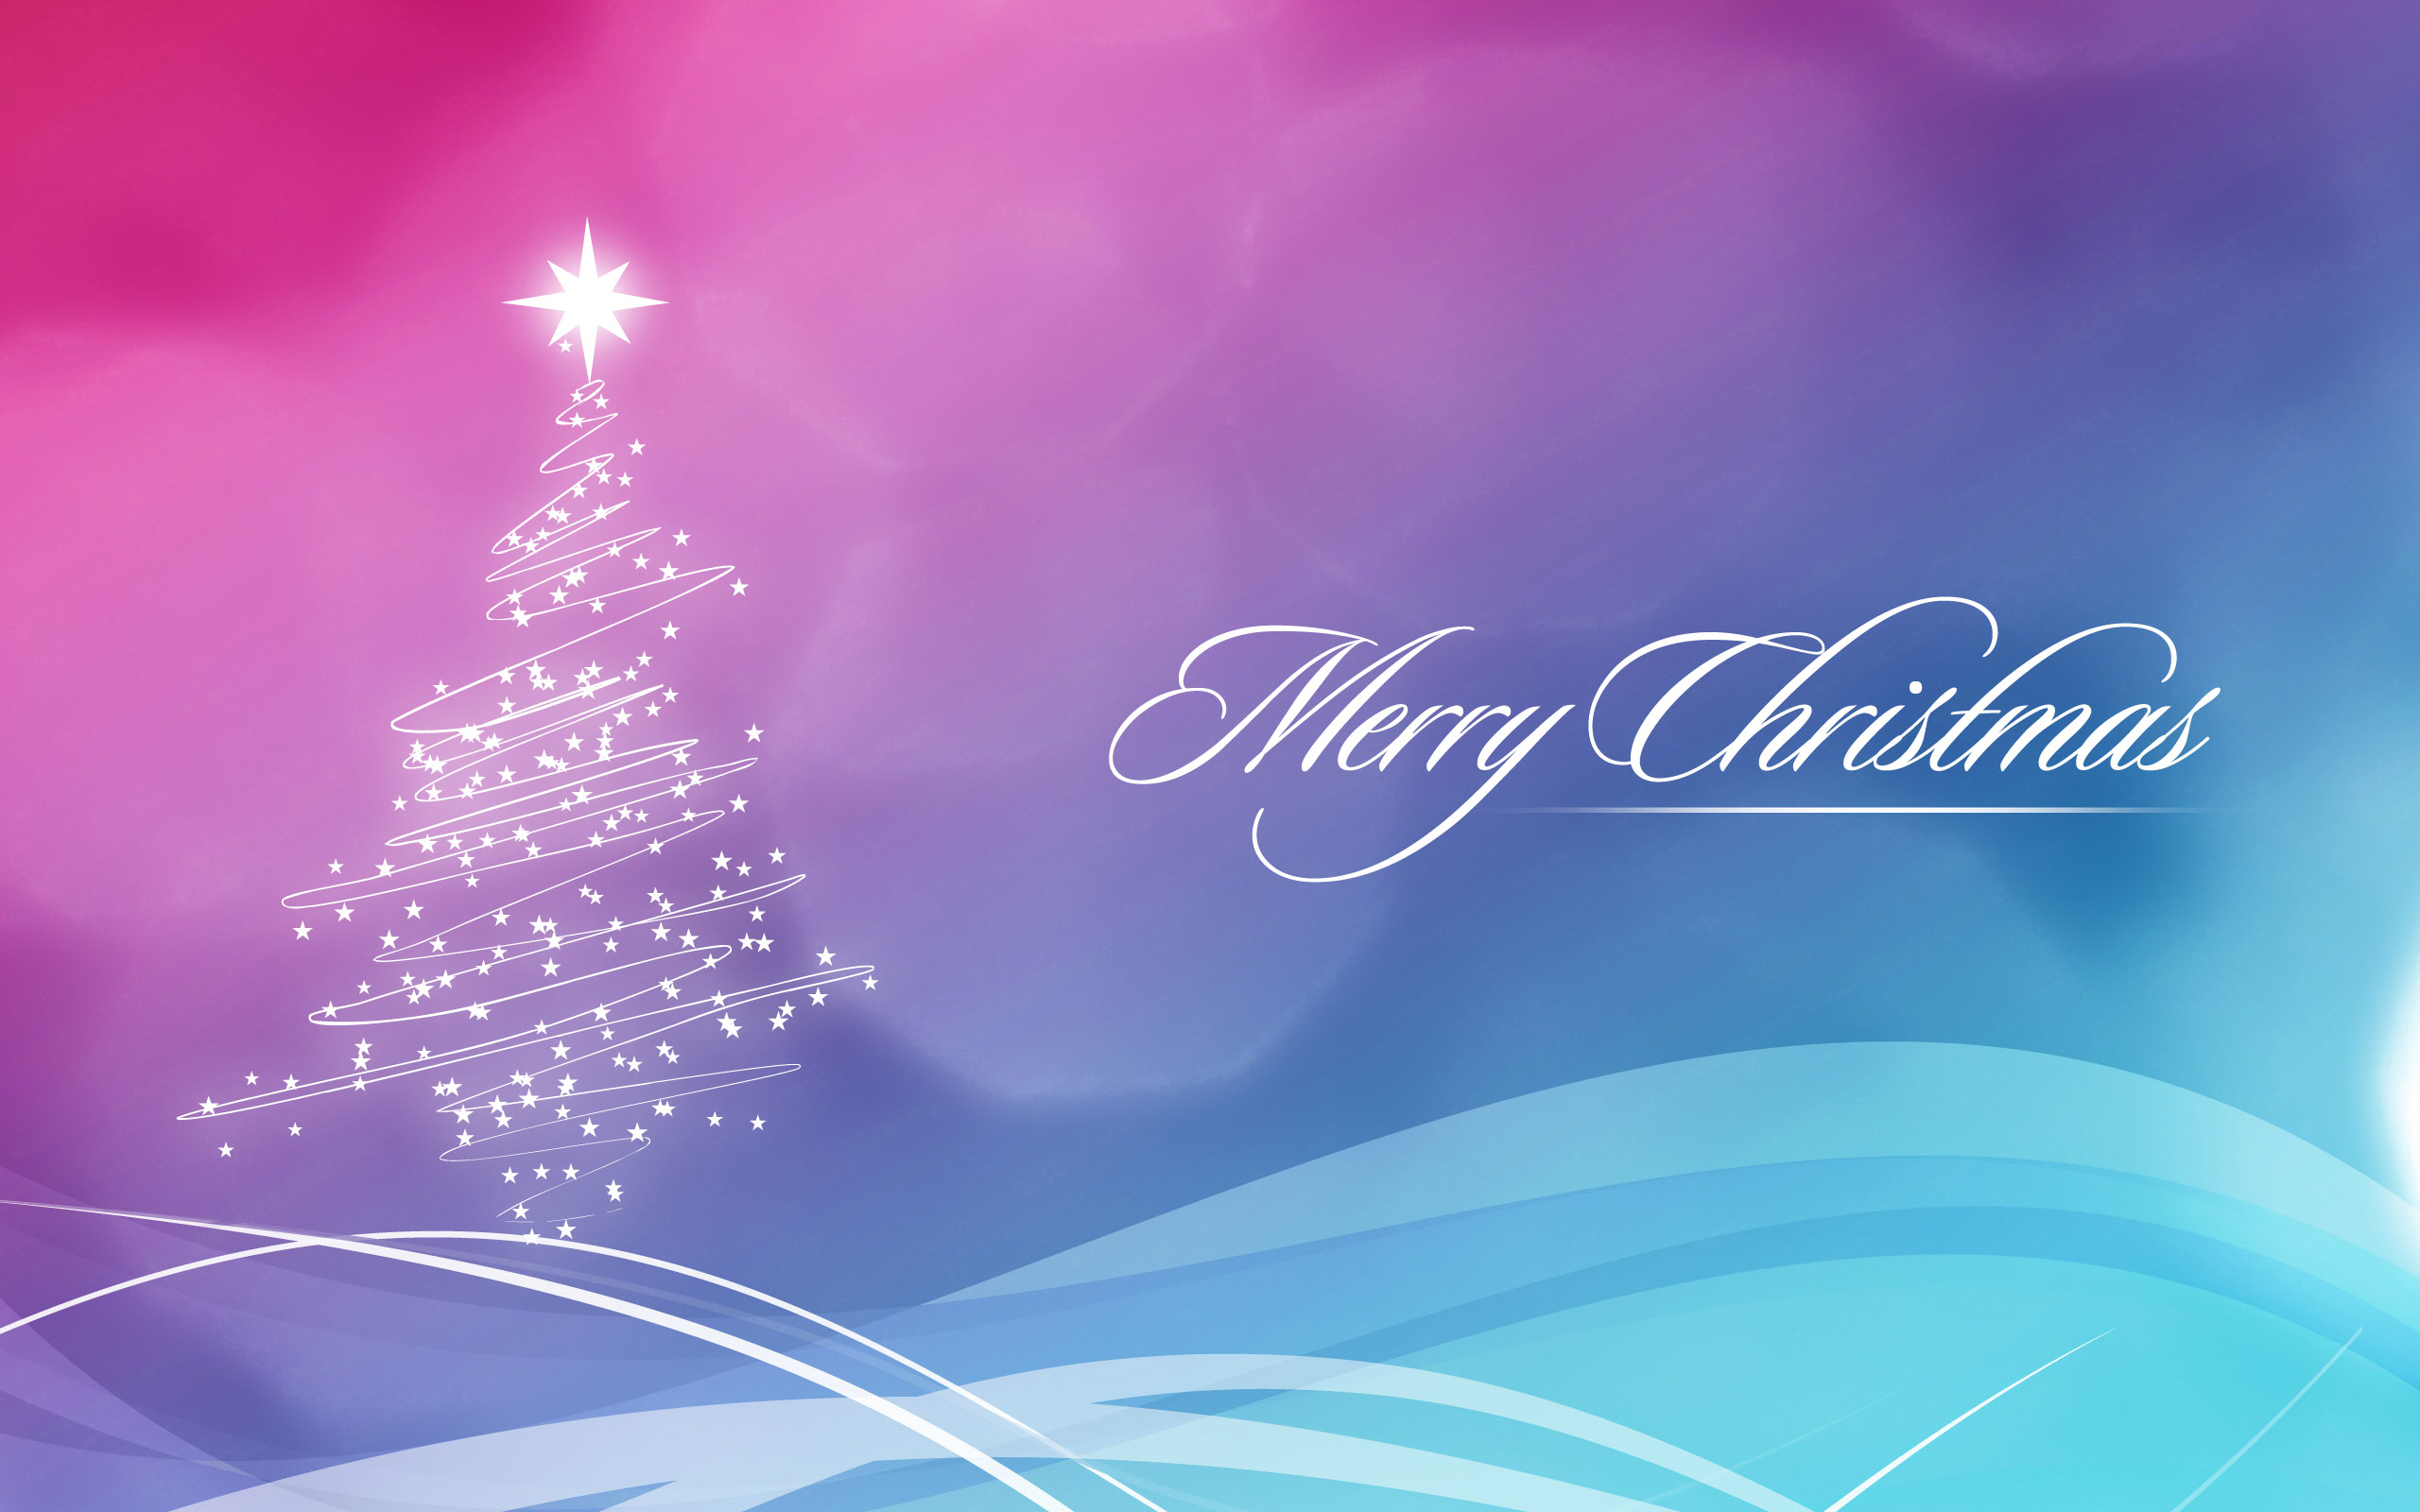 merry christmas wallpaper hd download free